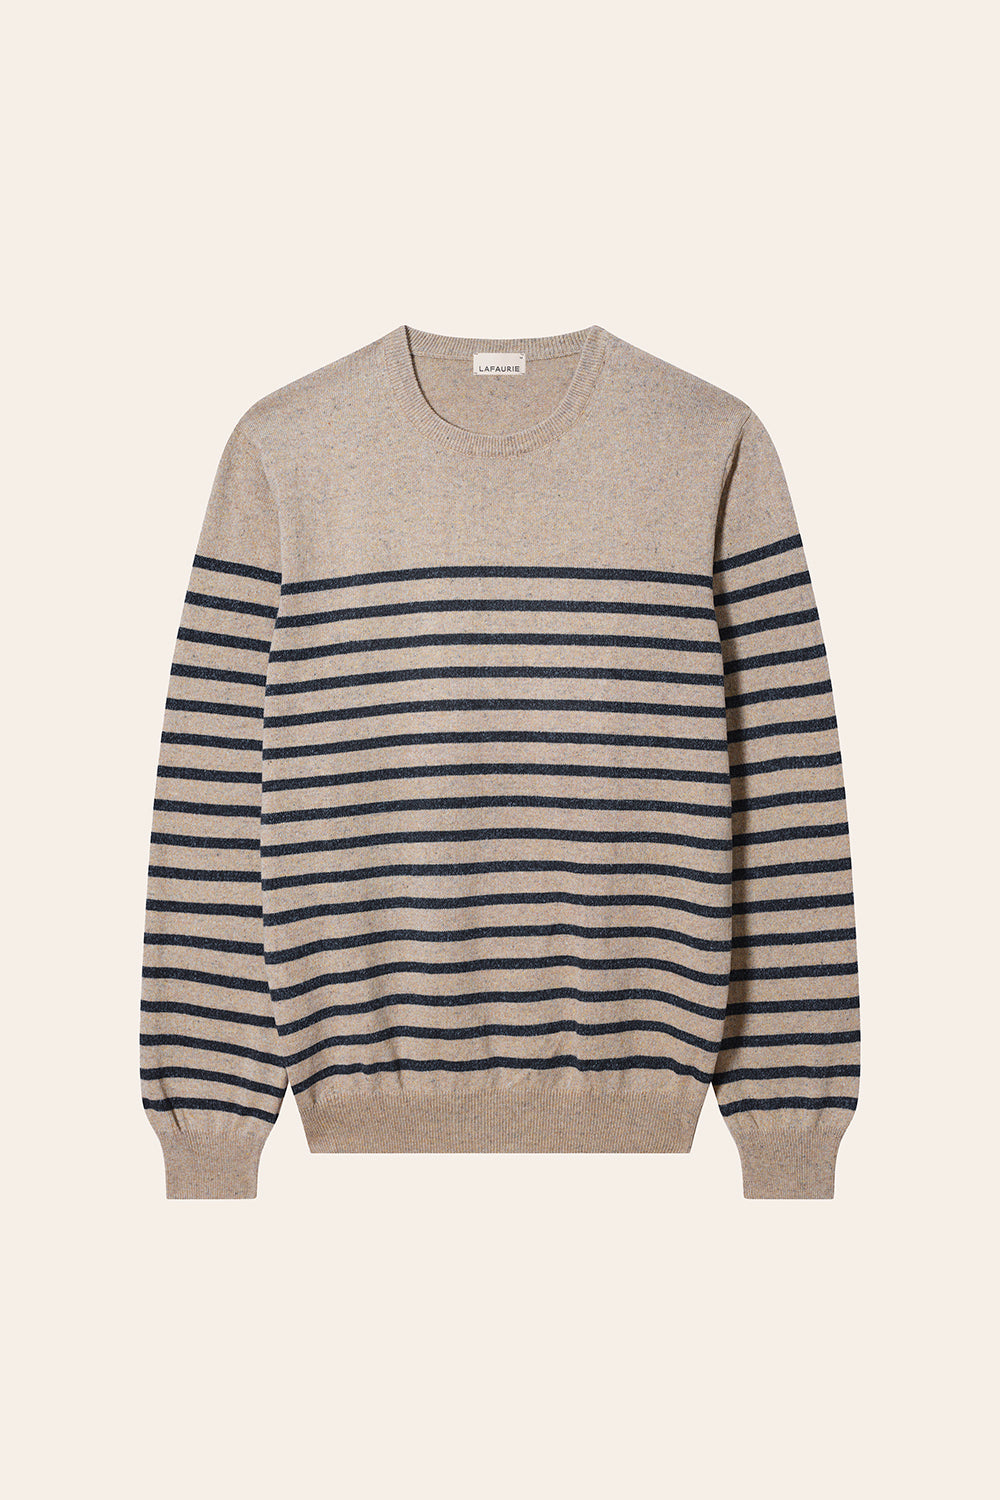 Poisson Sweater - Beige